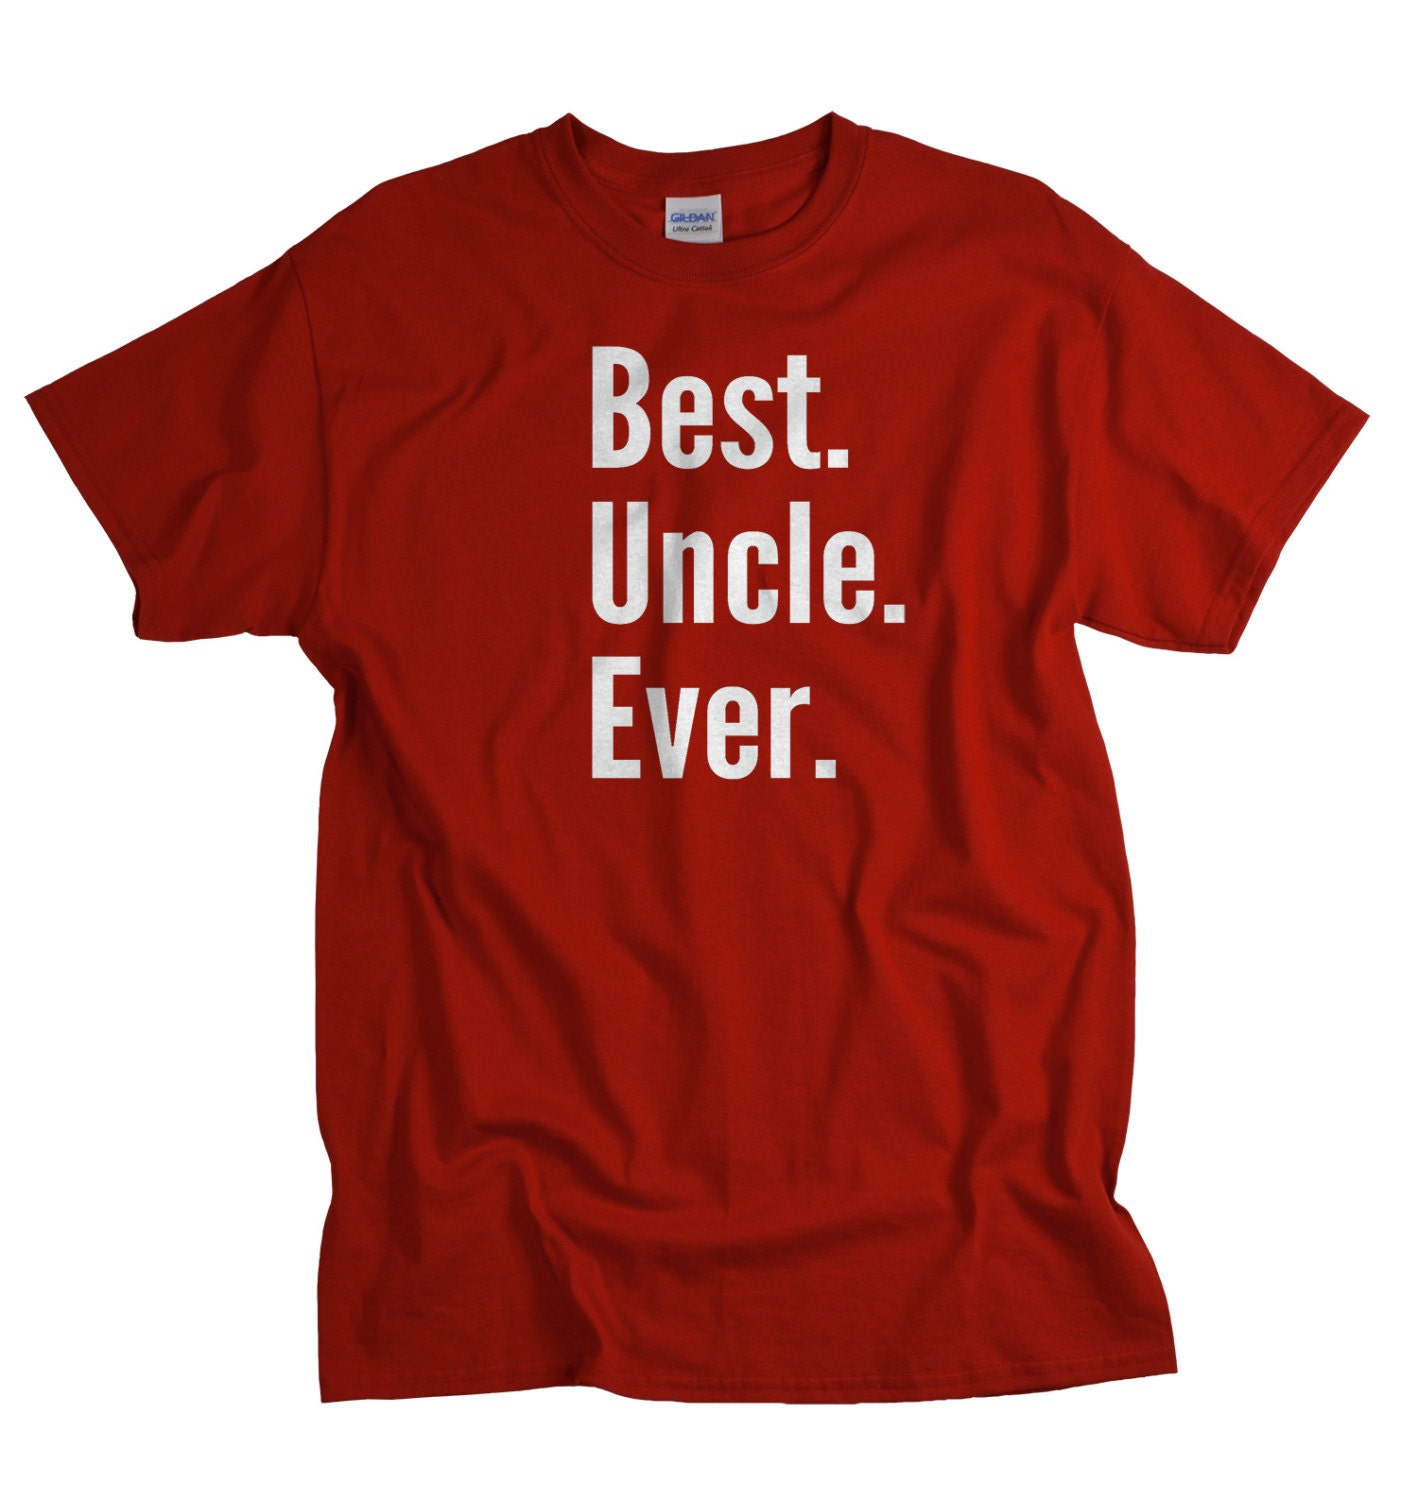 Best Uncle Ever t shirt funny uncle shirt new uncle tee shirt